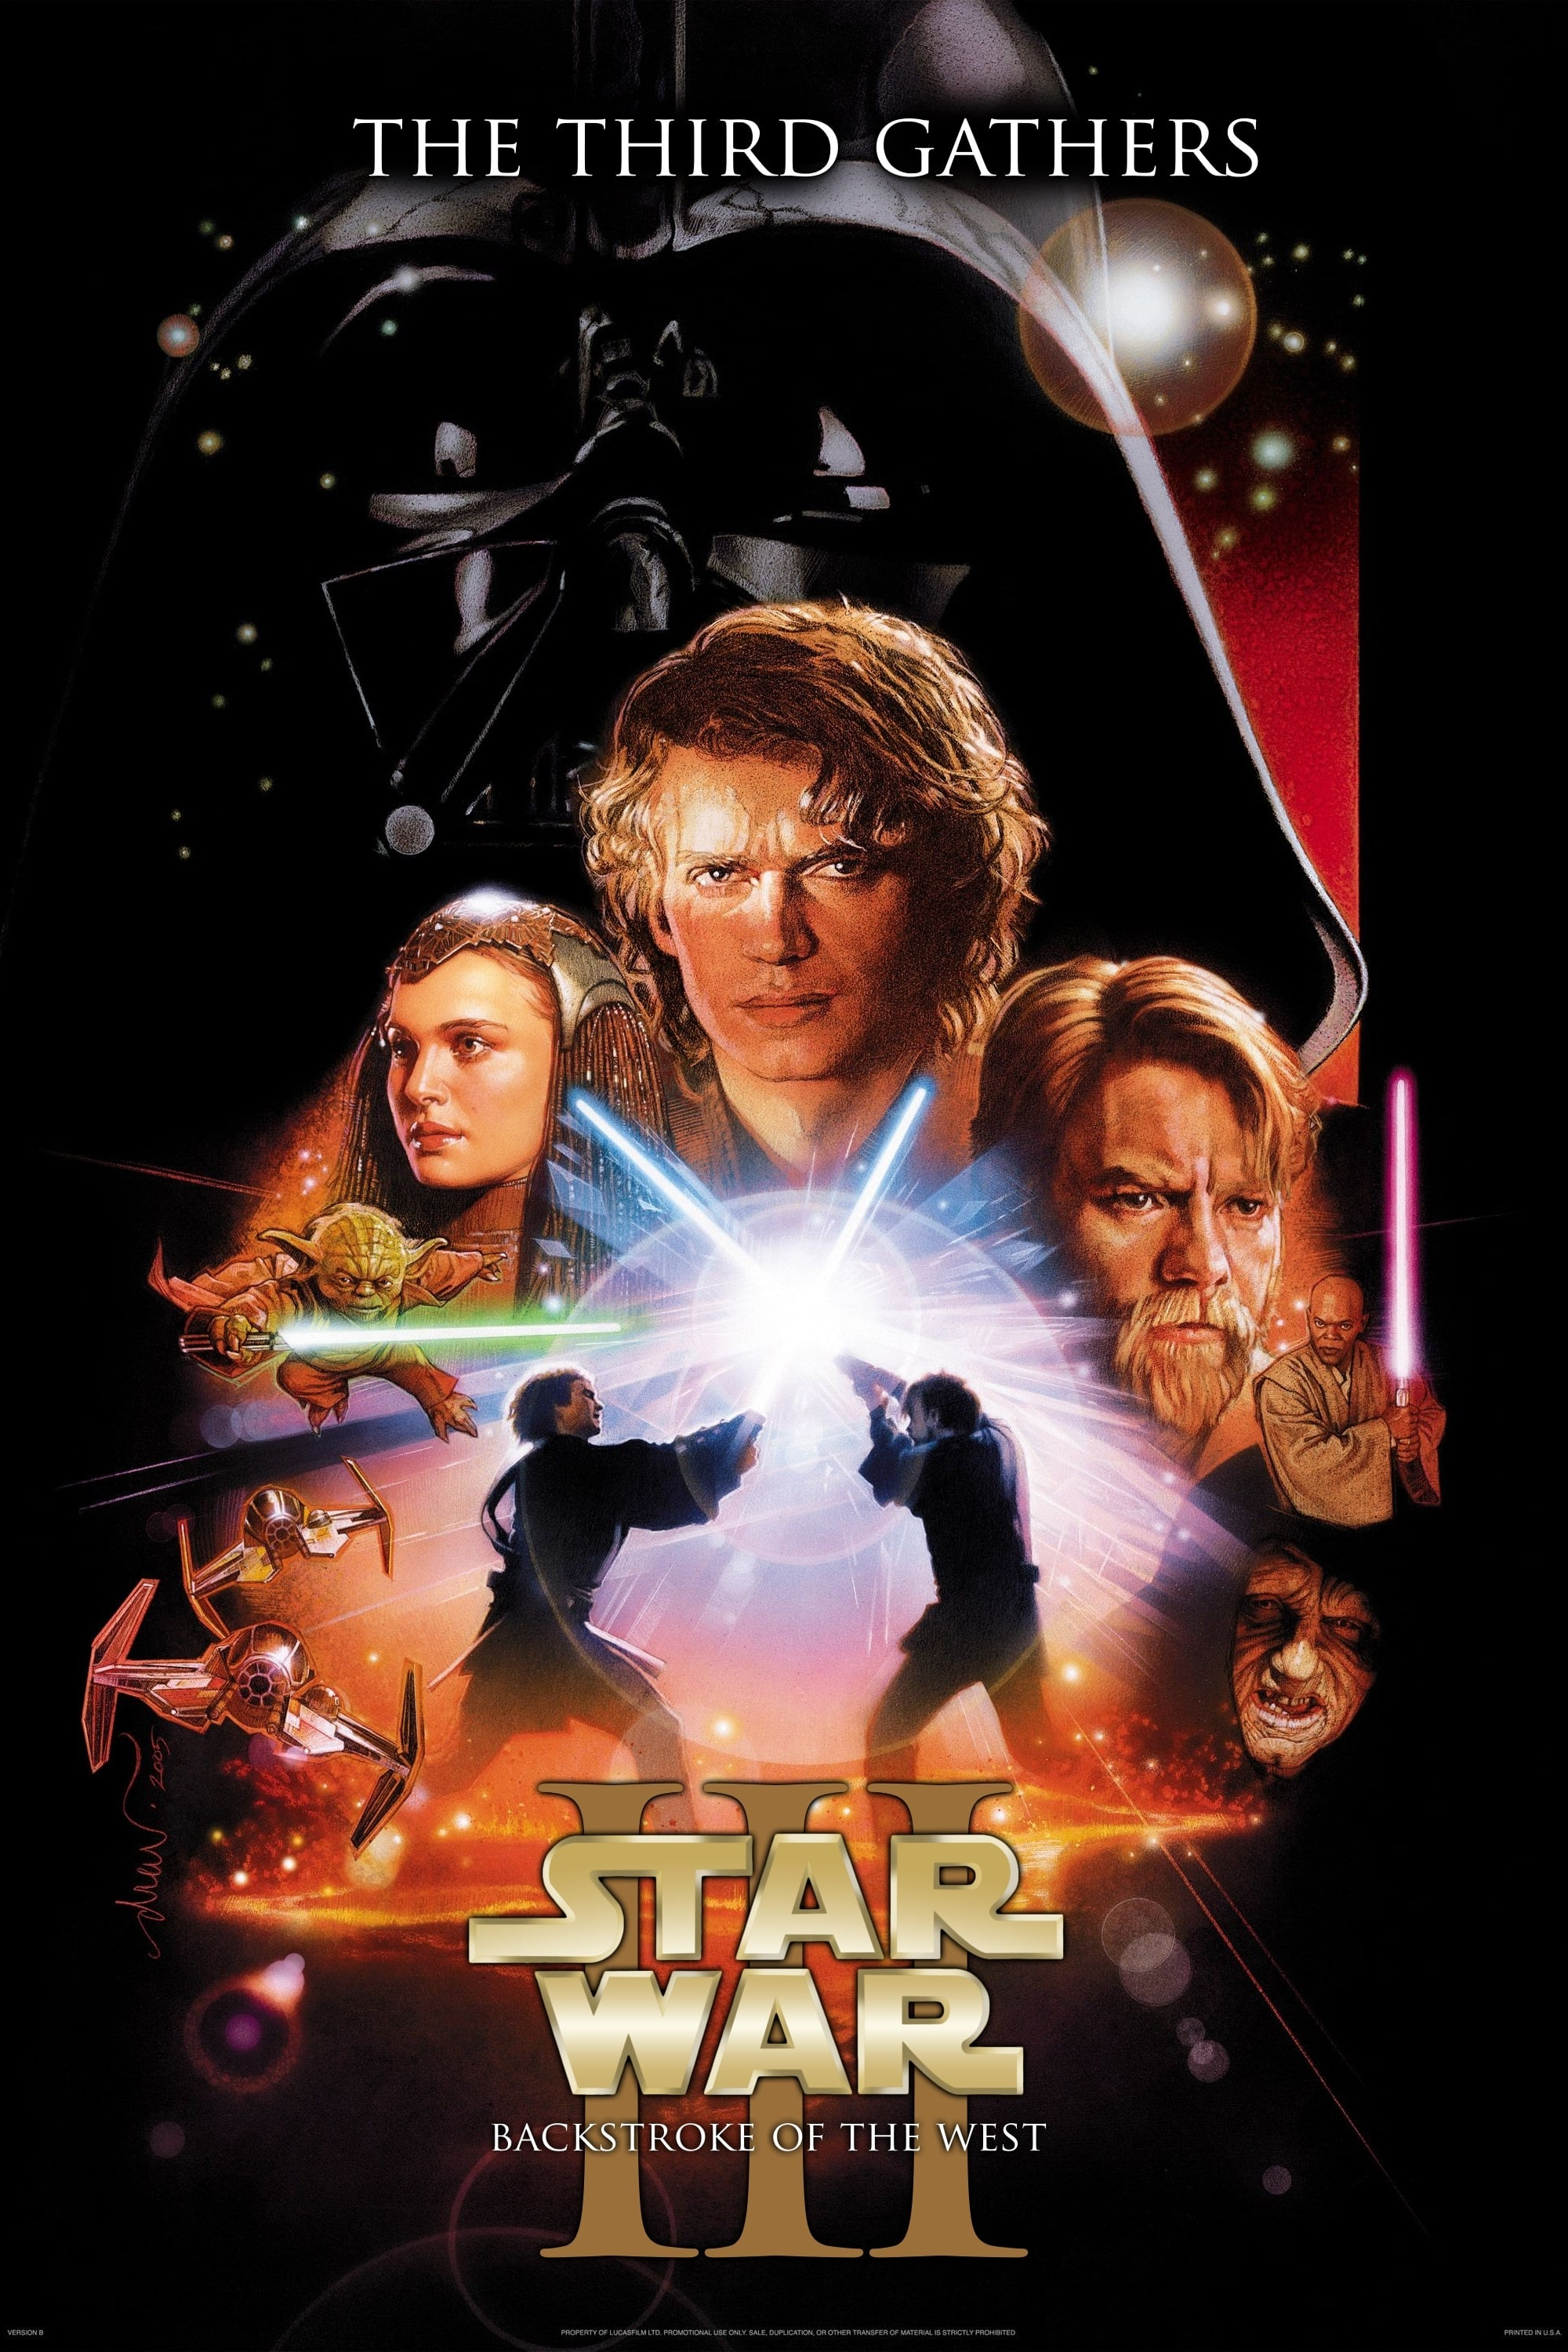 Star War The Third Gathers: Backstroke of the West (2016)